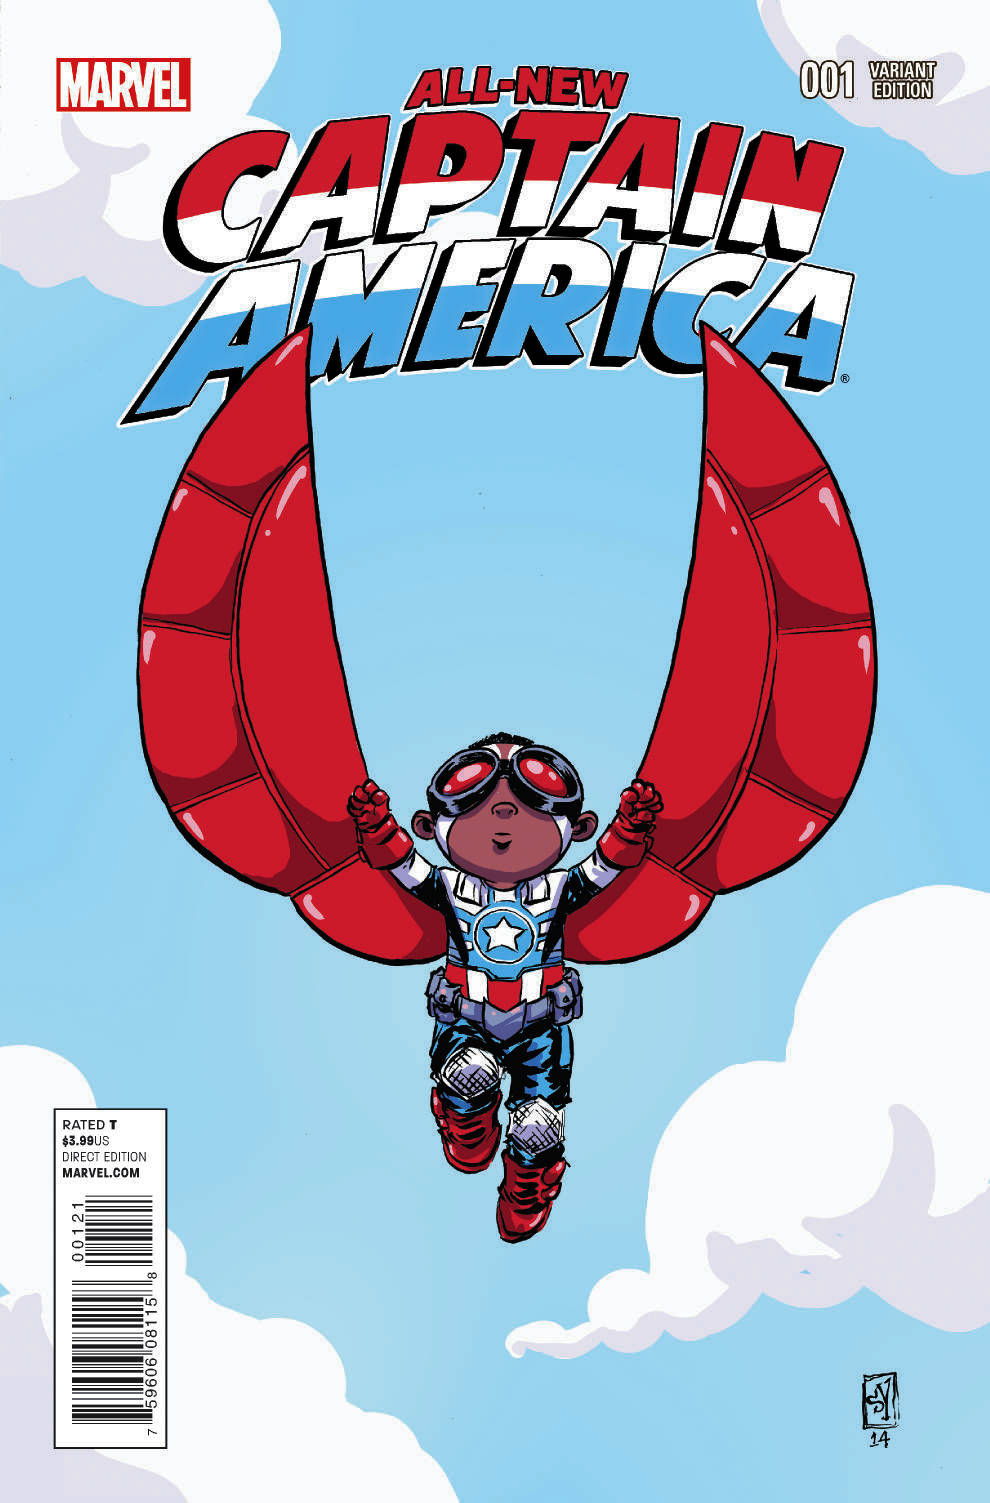 ALL NEW CAPTAIN AMERICA #1 YOUNG VAR